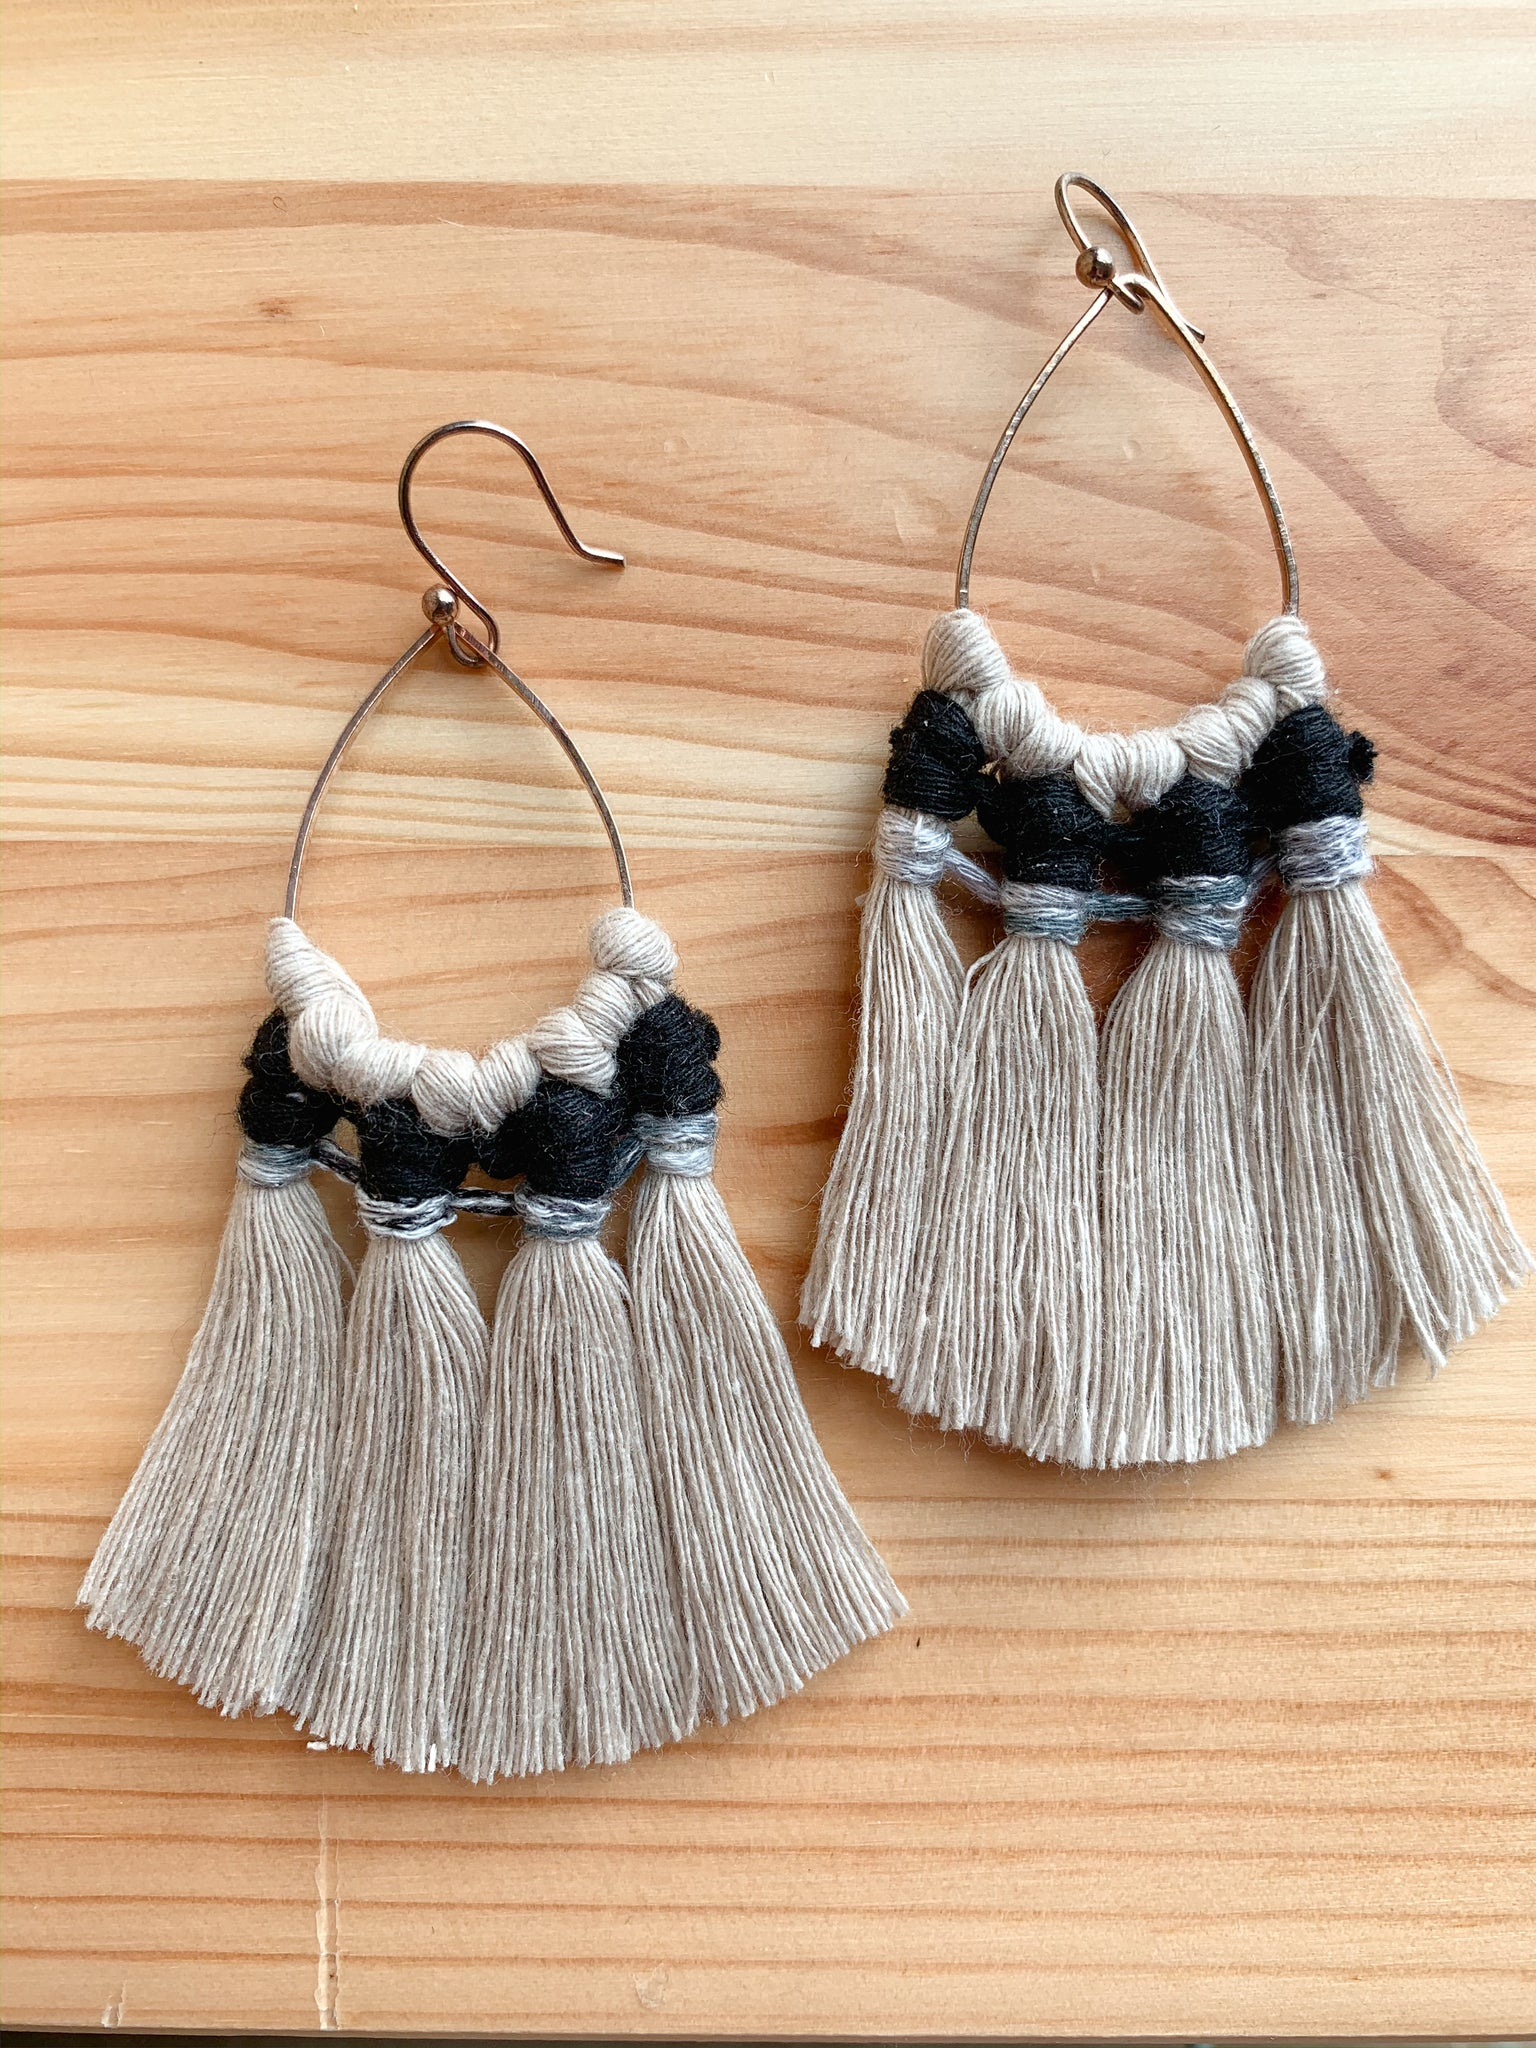 DAKOTA | Macramé Fringe Earrings, Teardrops